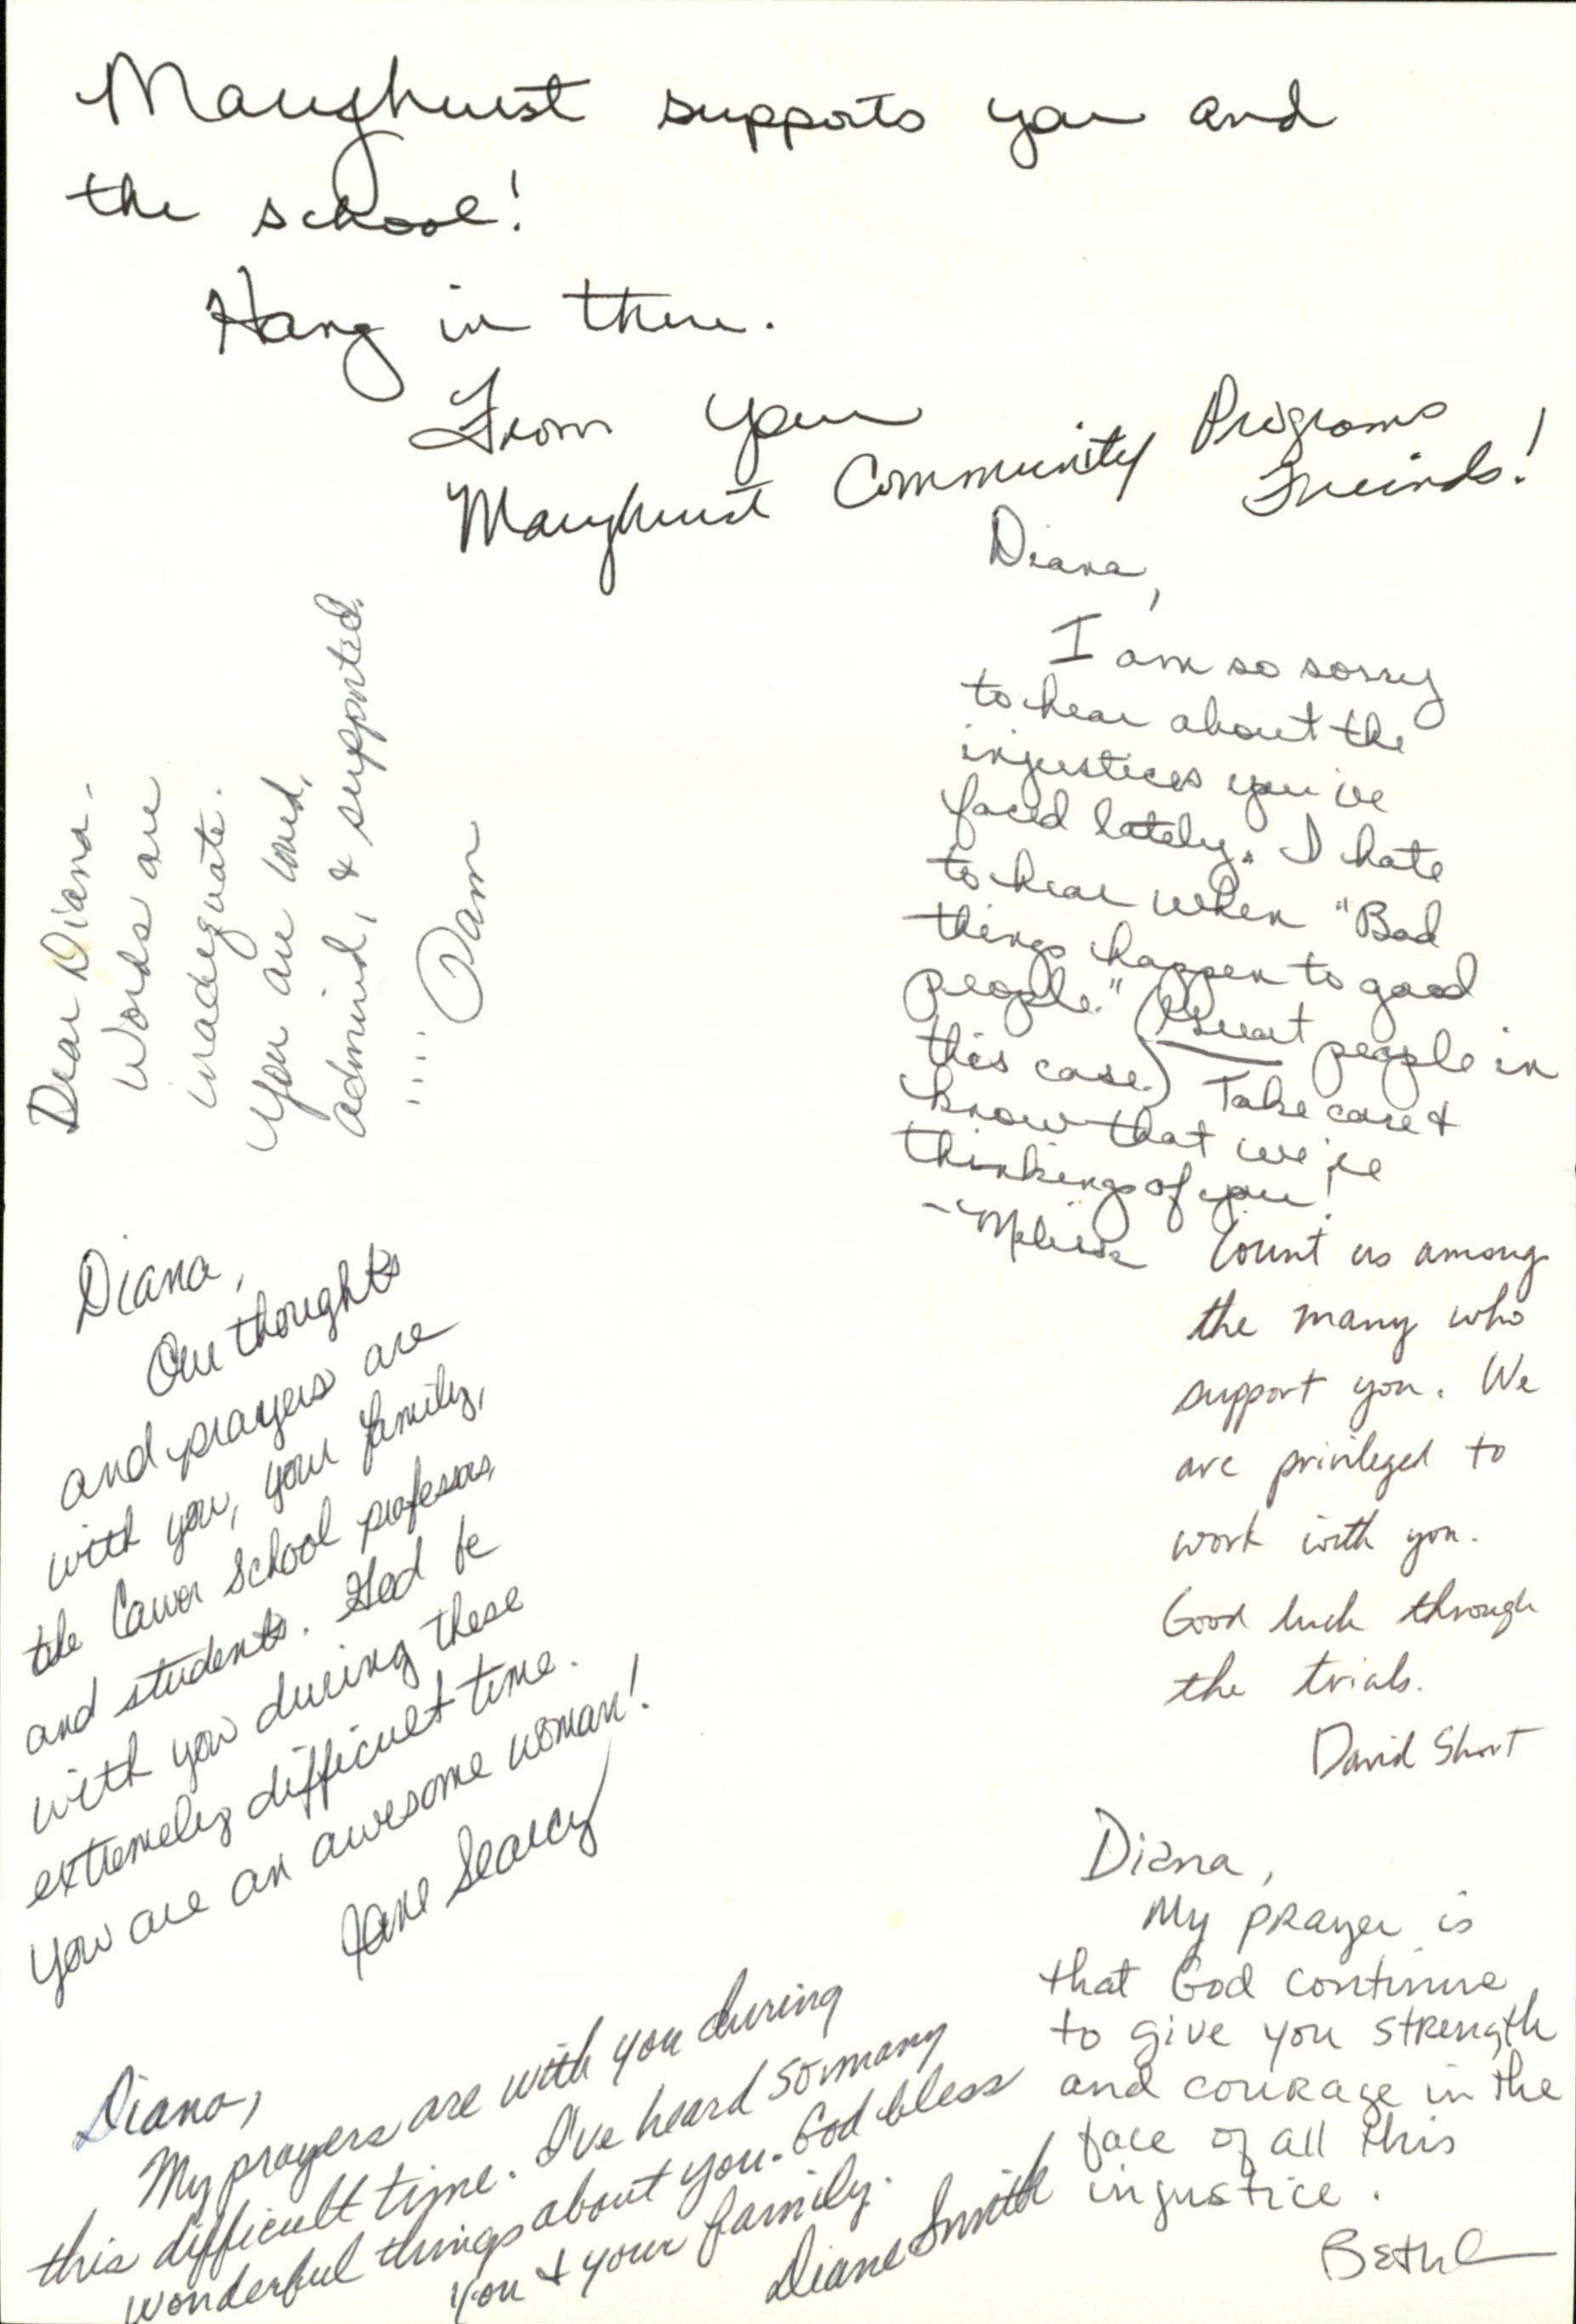 Diana Garland letter of support